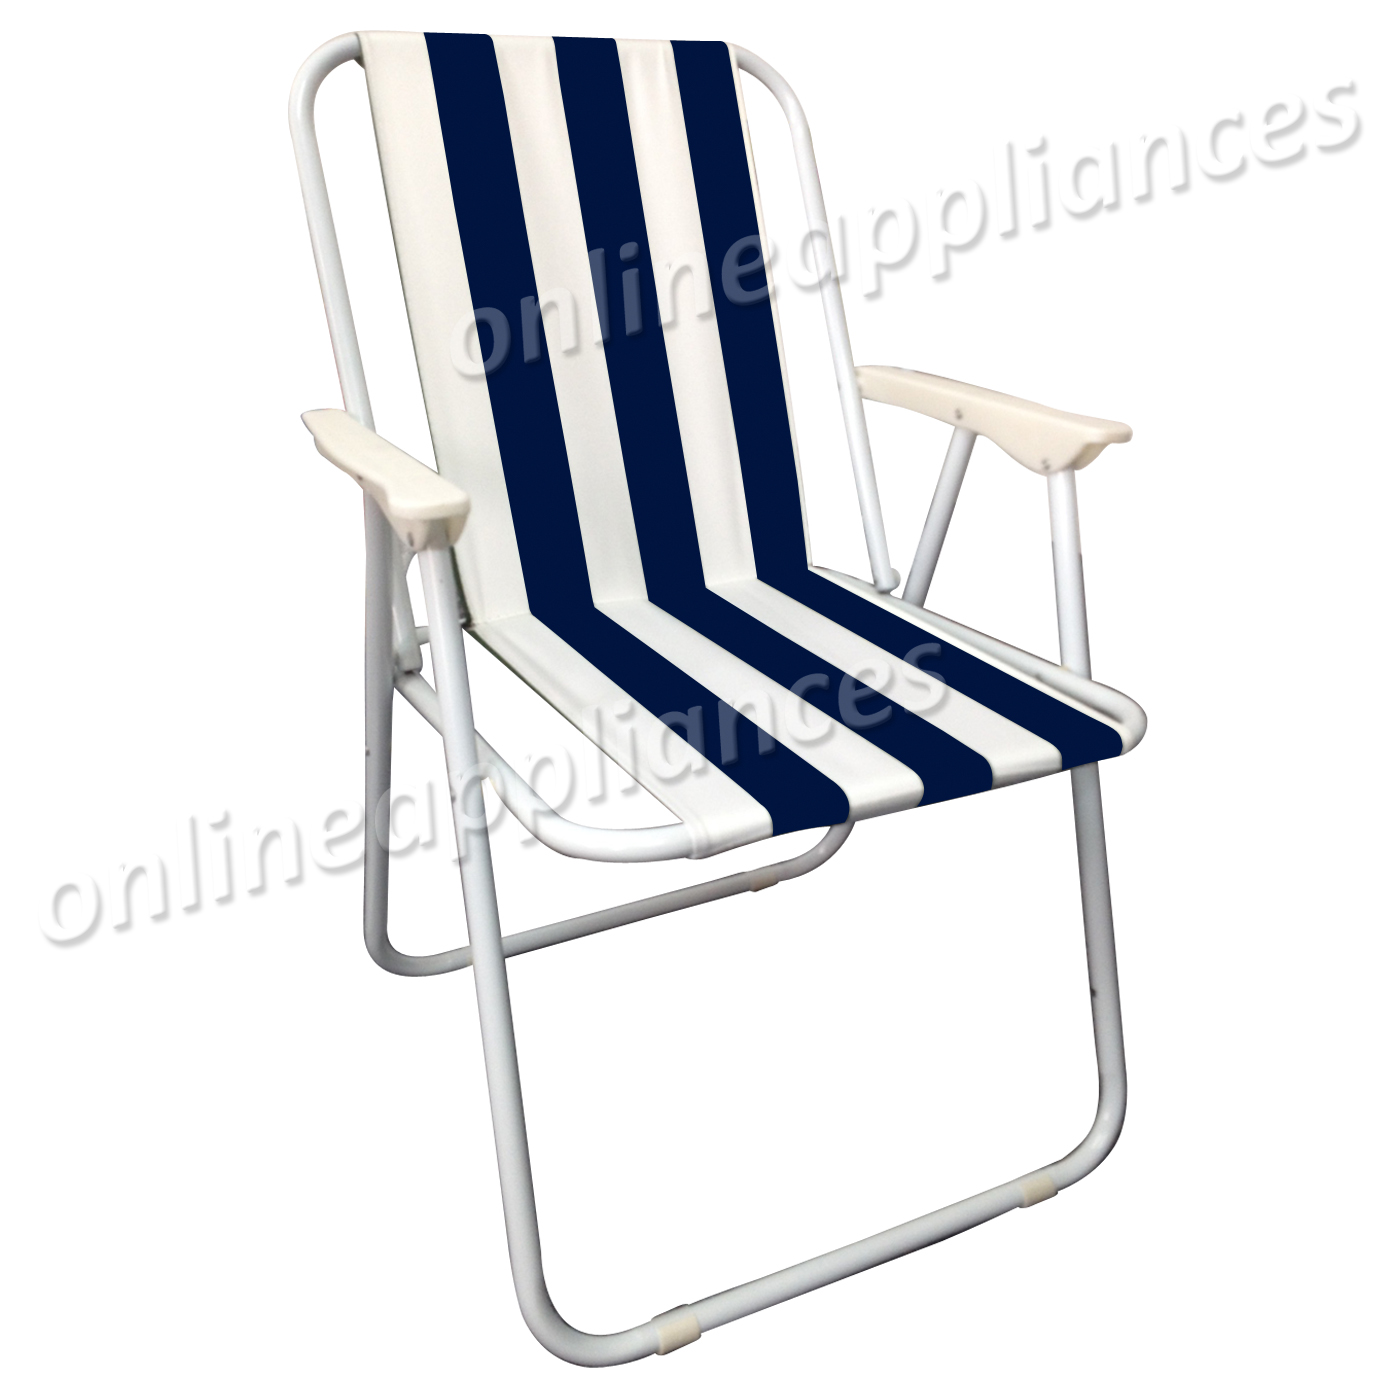 LIGHTWEIGHT FOLDING PORTABLE OUTDOOR GARDEN PATIO BEACH CAMPING CHAIR 8 DESIG